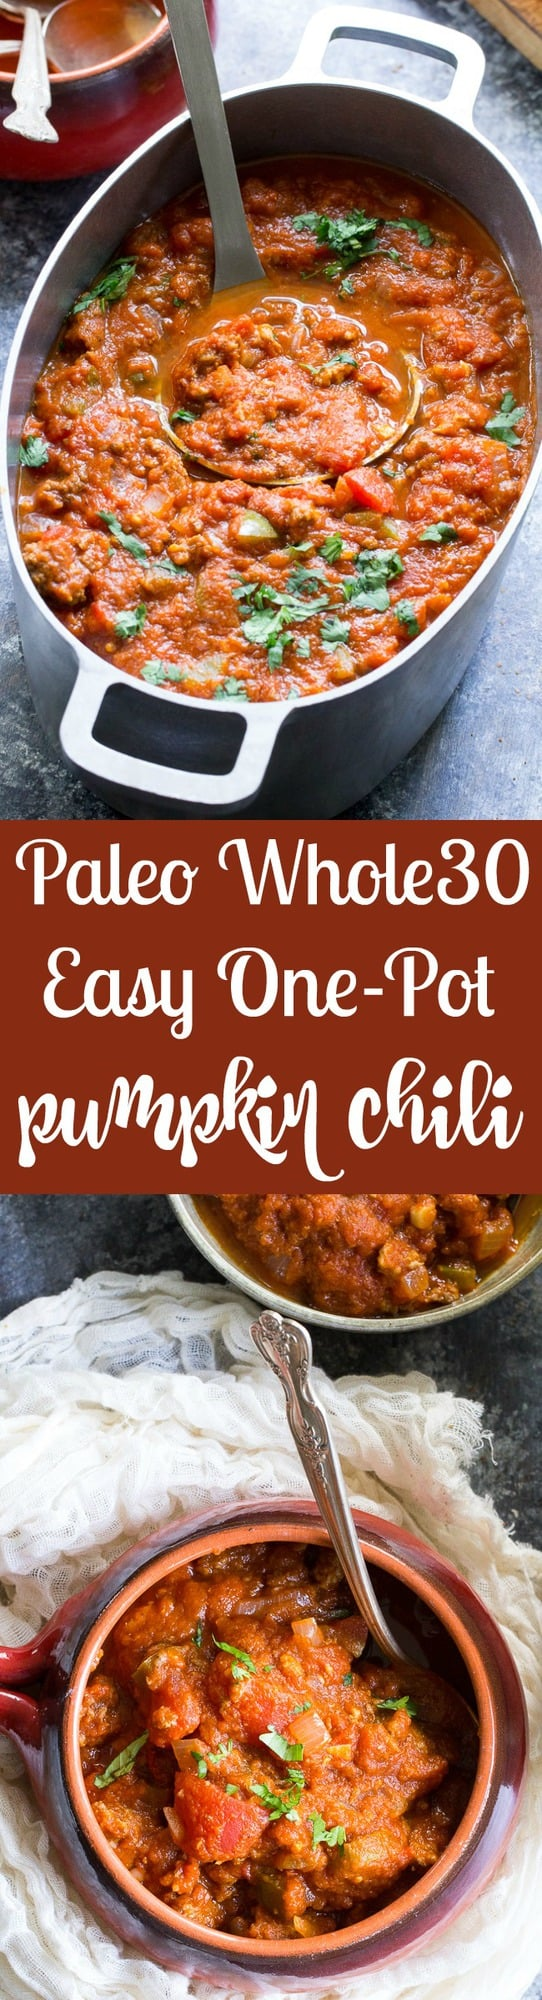 This easy one-pot paleo pumpkin chili can be made with beef or your favorite ground meat and can be ready in 30 minutes! It's a hearty, comforting, healthy and Whole30 compliant meal that everyone will love, even the kids!